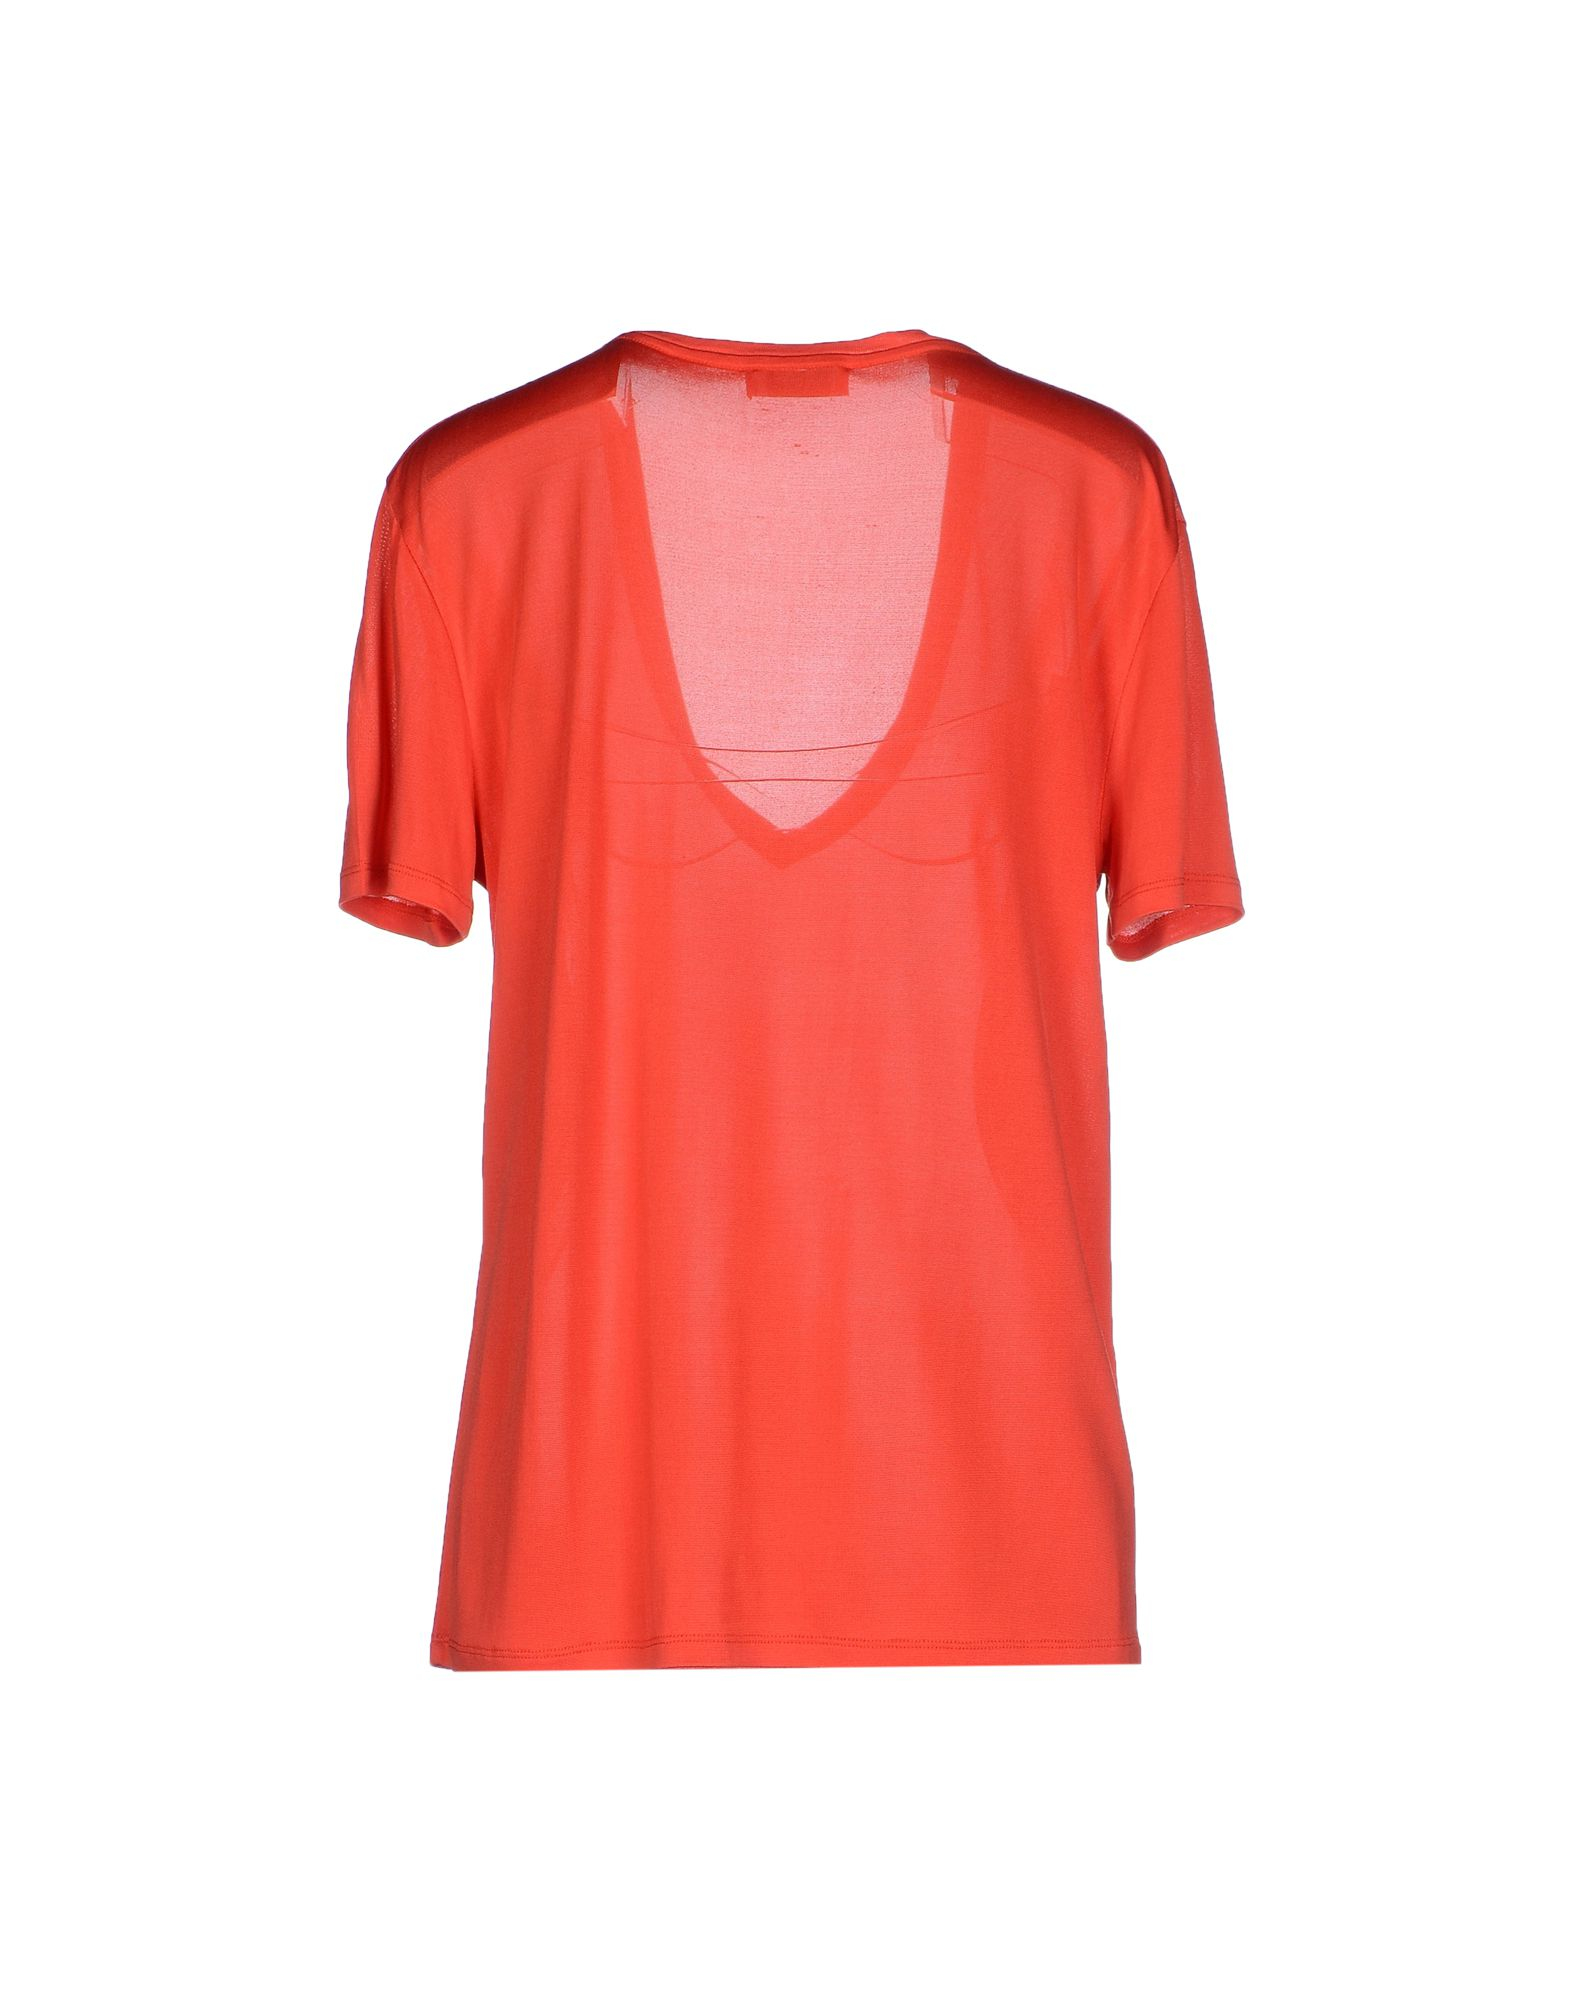 Equipment T Shirt In Red Lyst